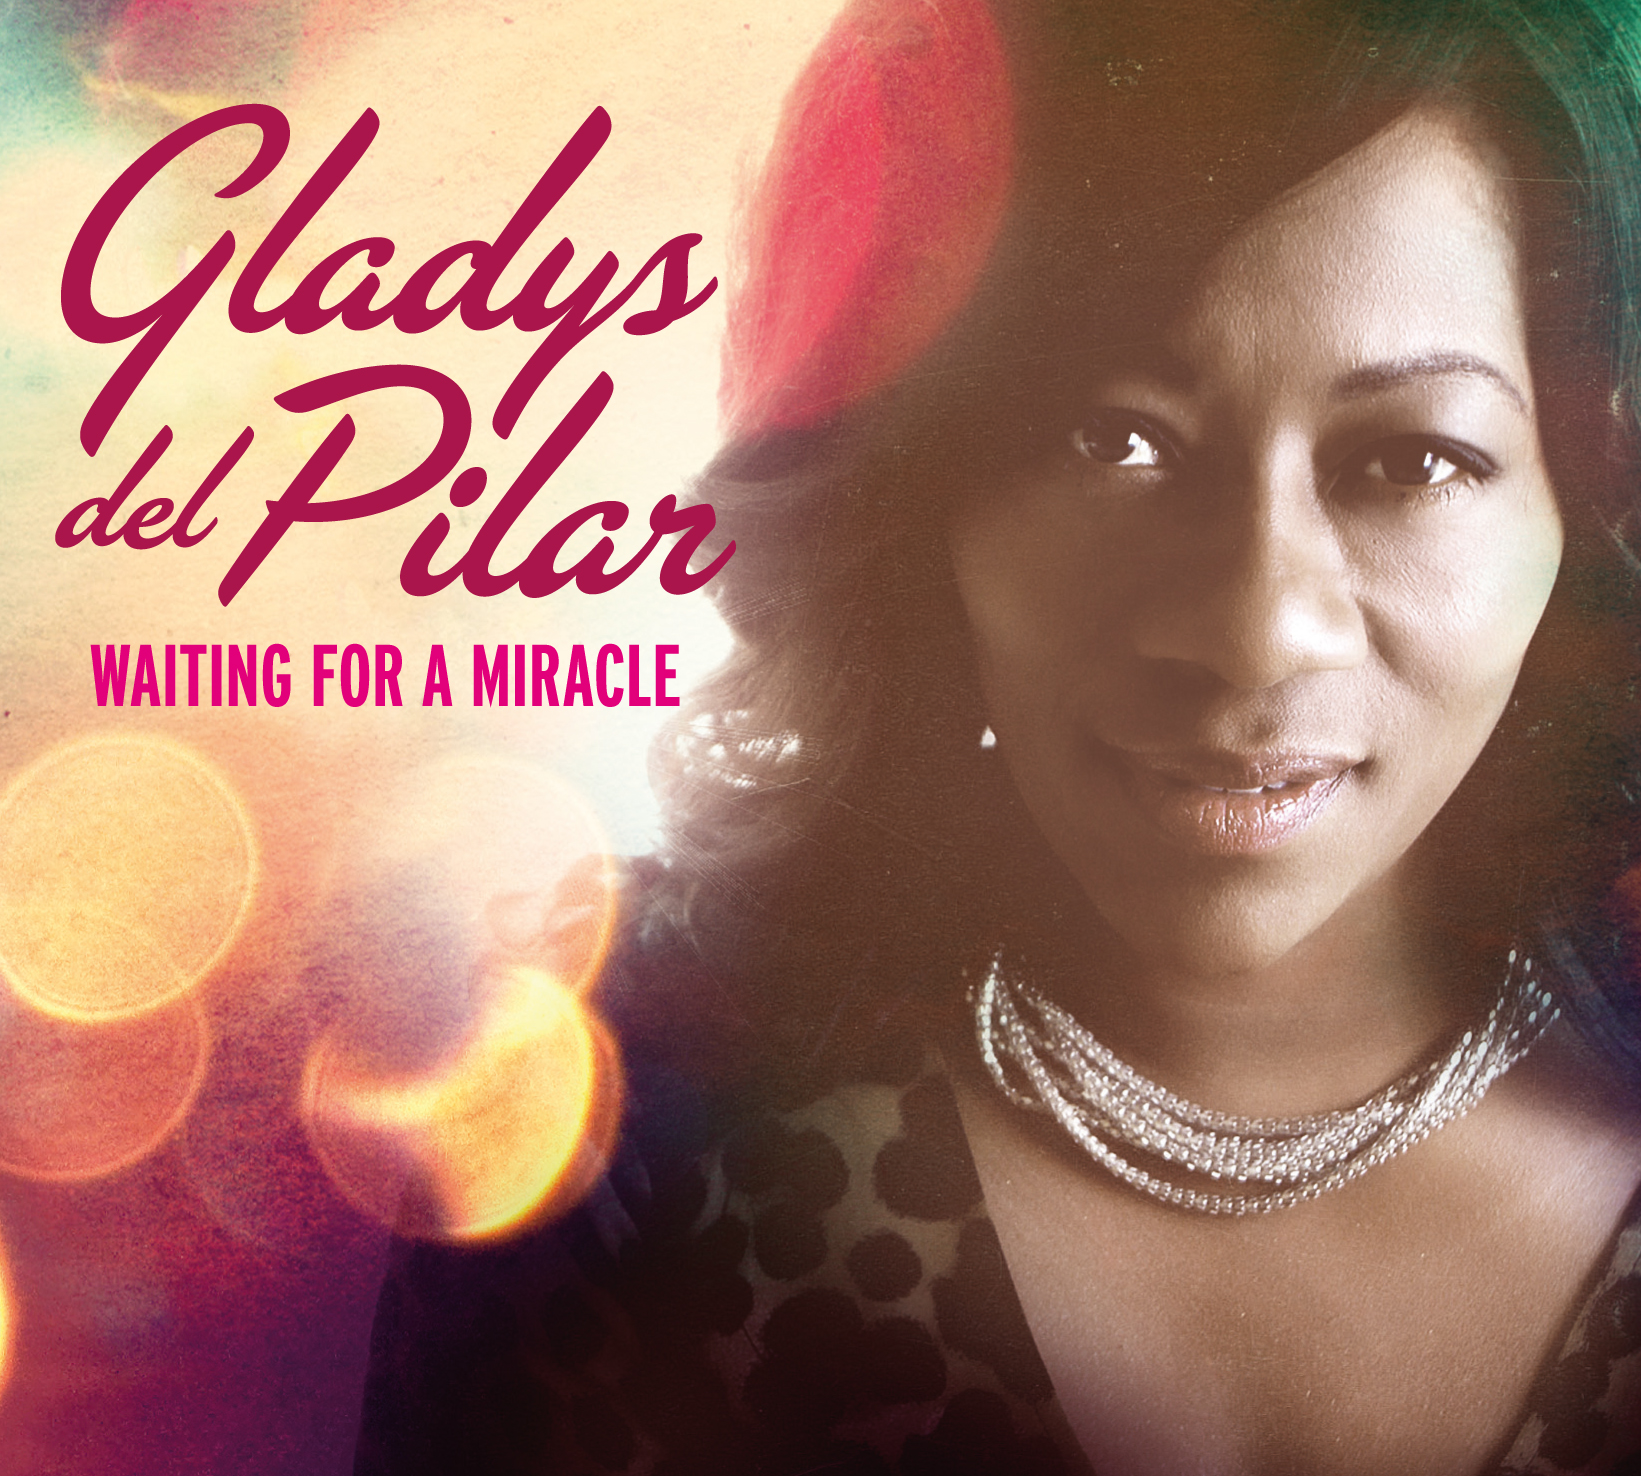 Gladys del Pilar - Waiting for a Miracle